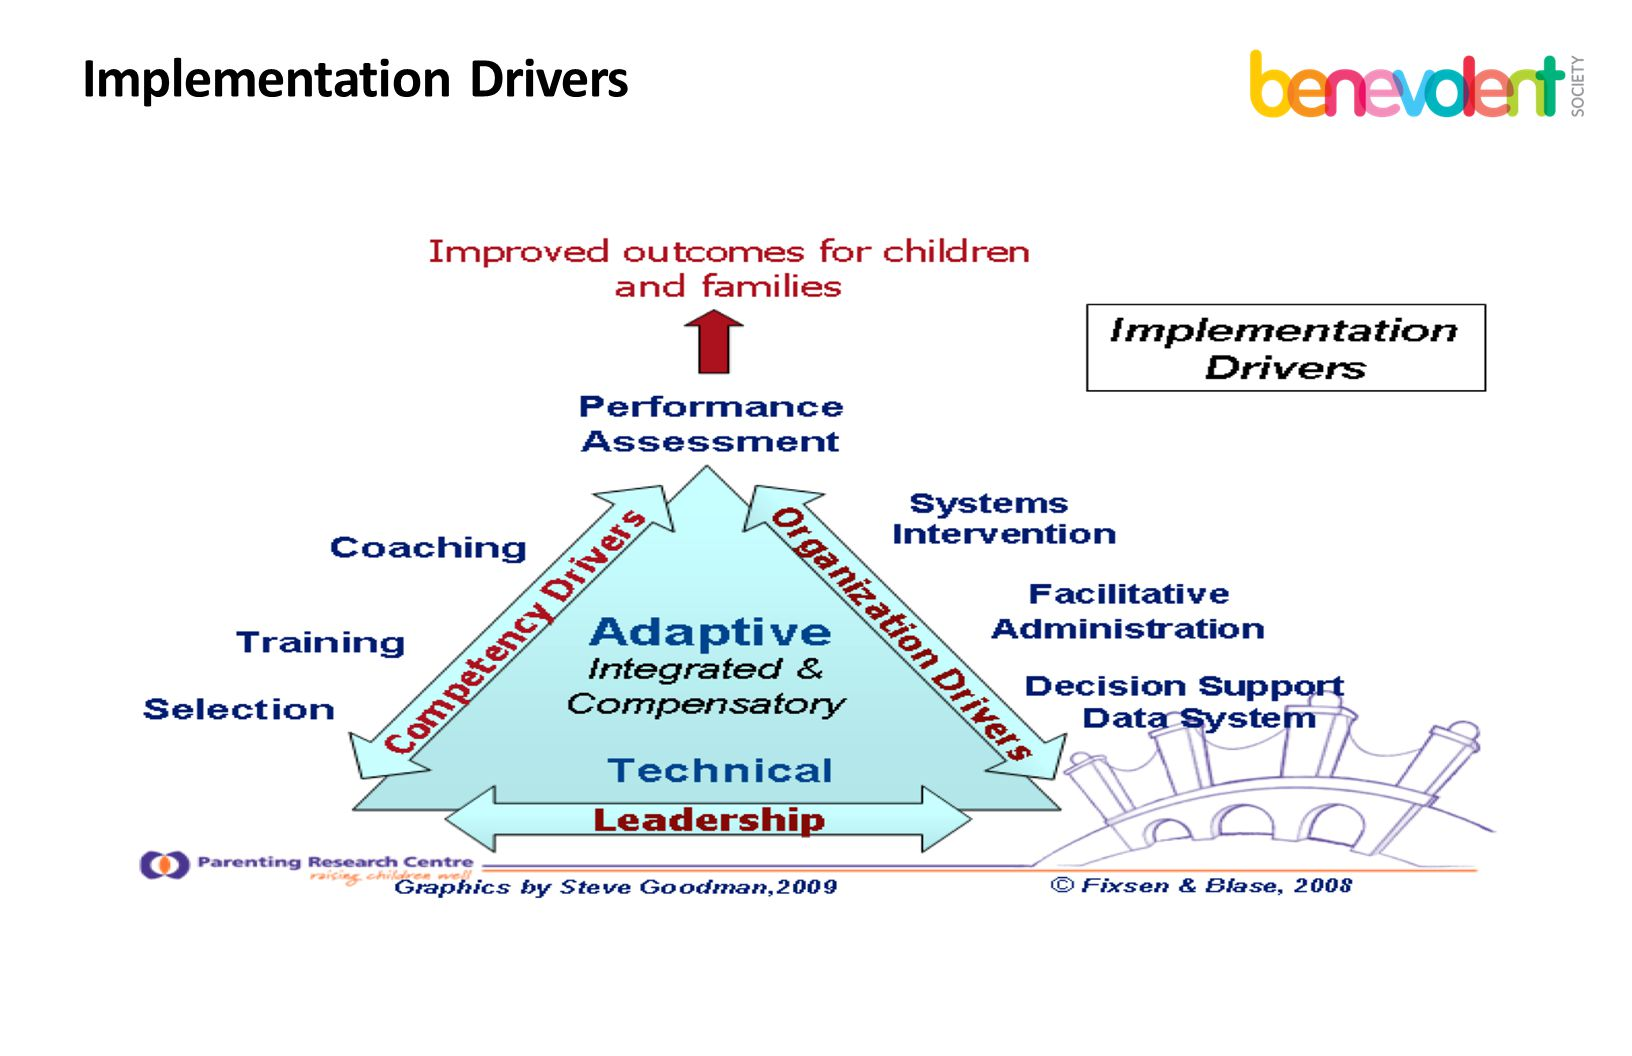 Implementation Drivers